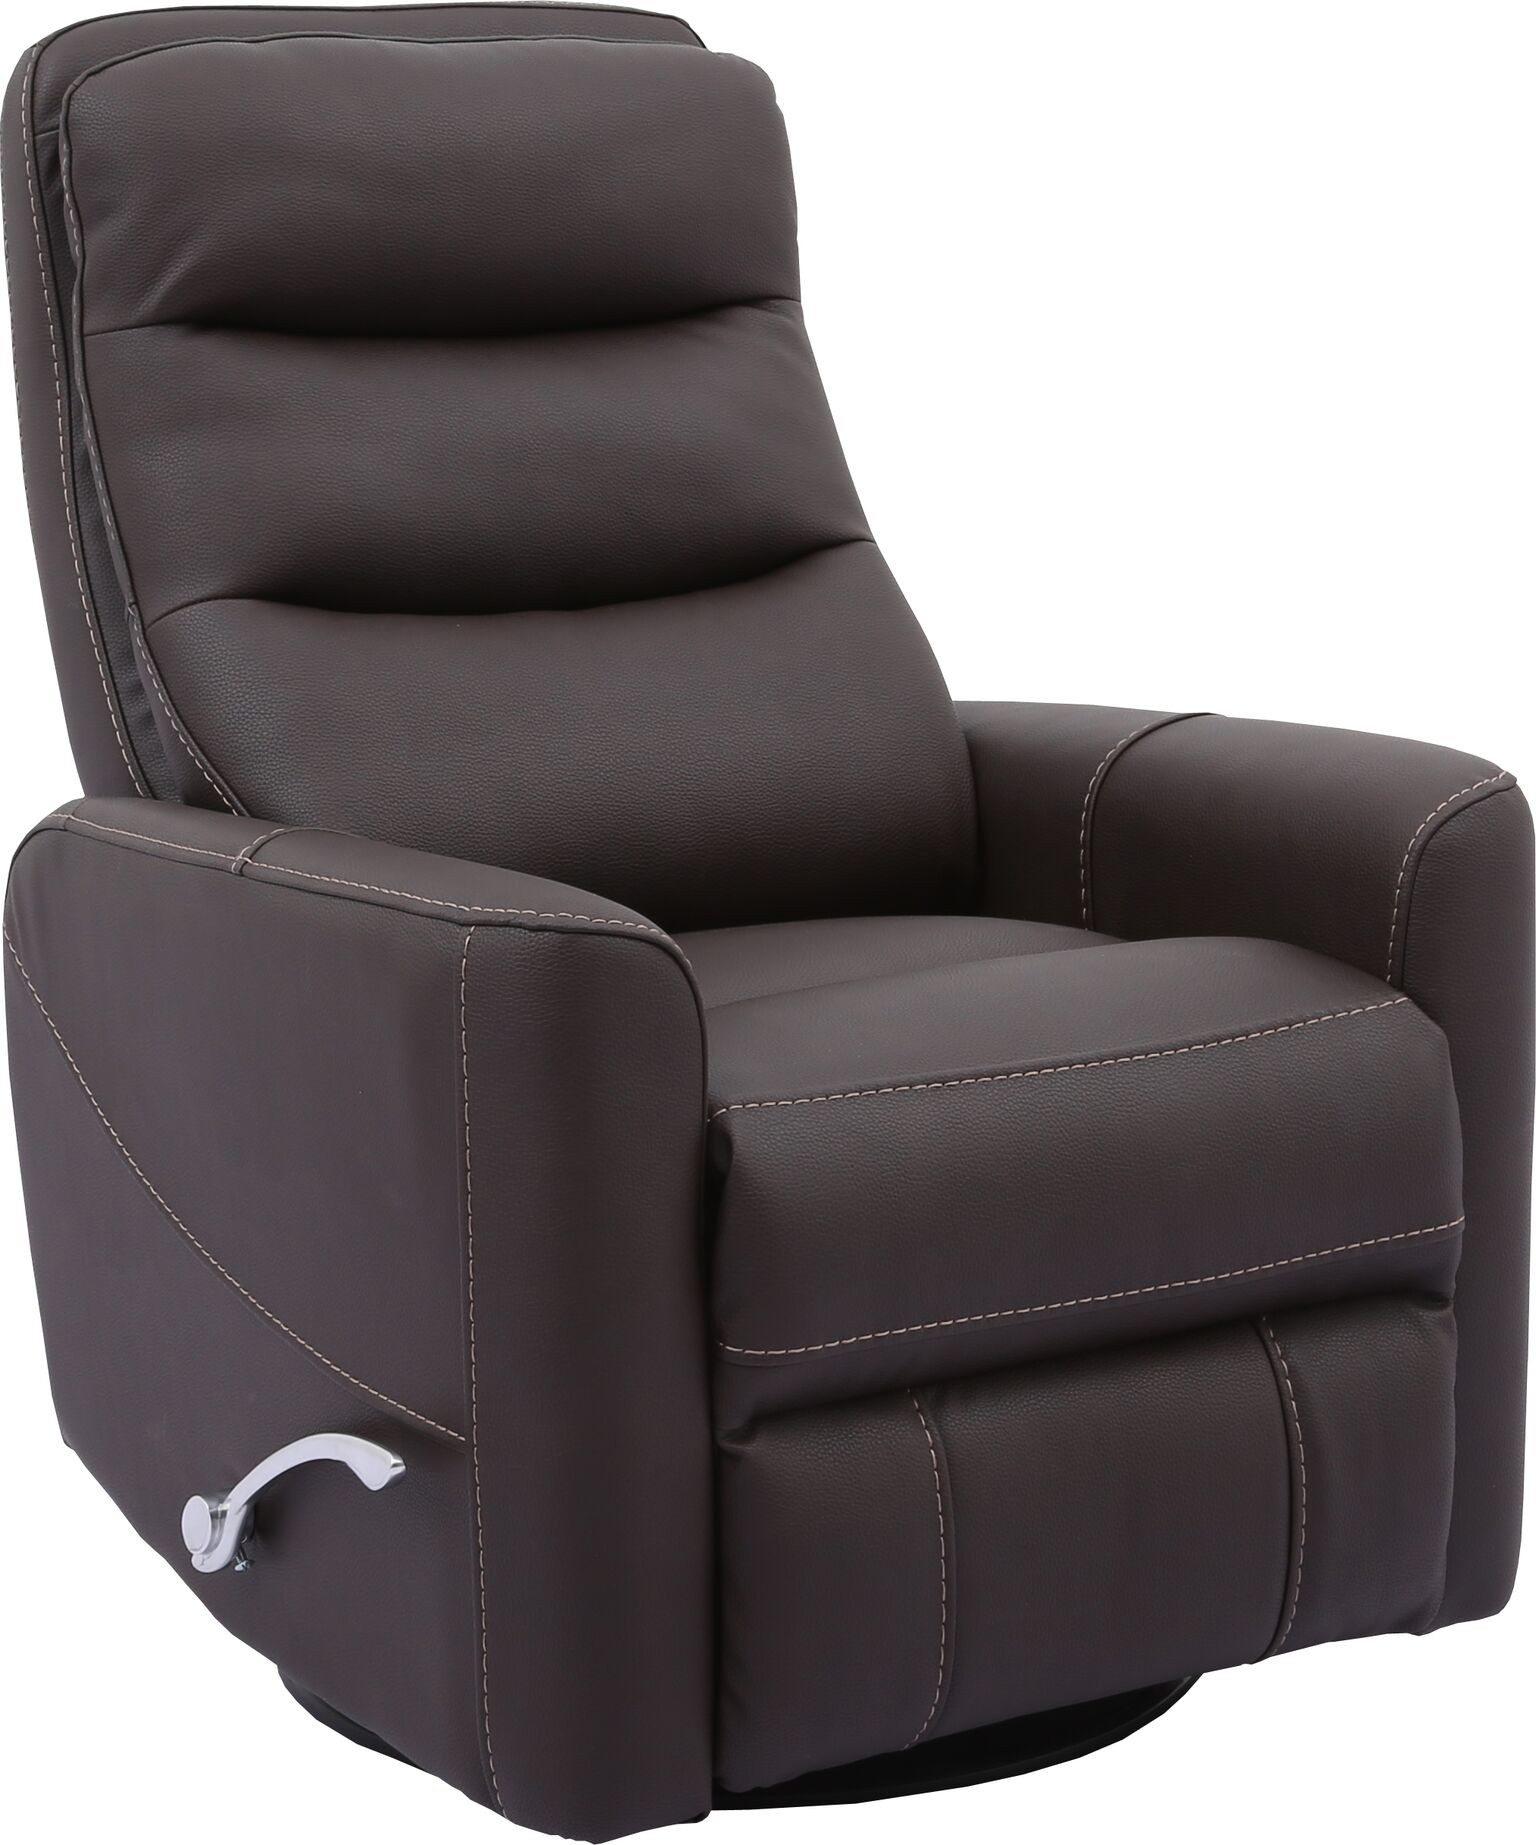 Hercules -Chocolate- Swivel Glider Recliner With Articulating Headrest with regard to Hercules Grey Swivel Glider Recliners